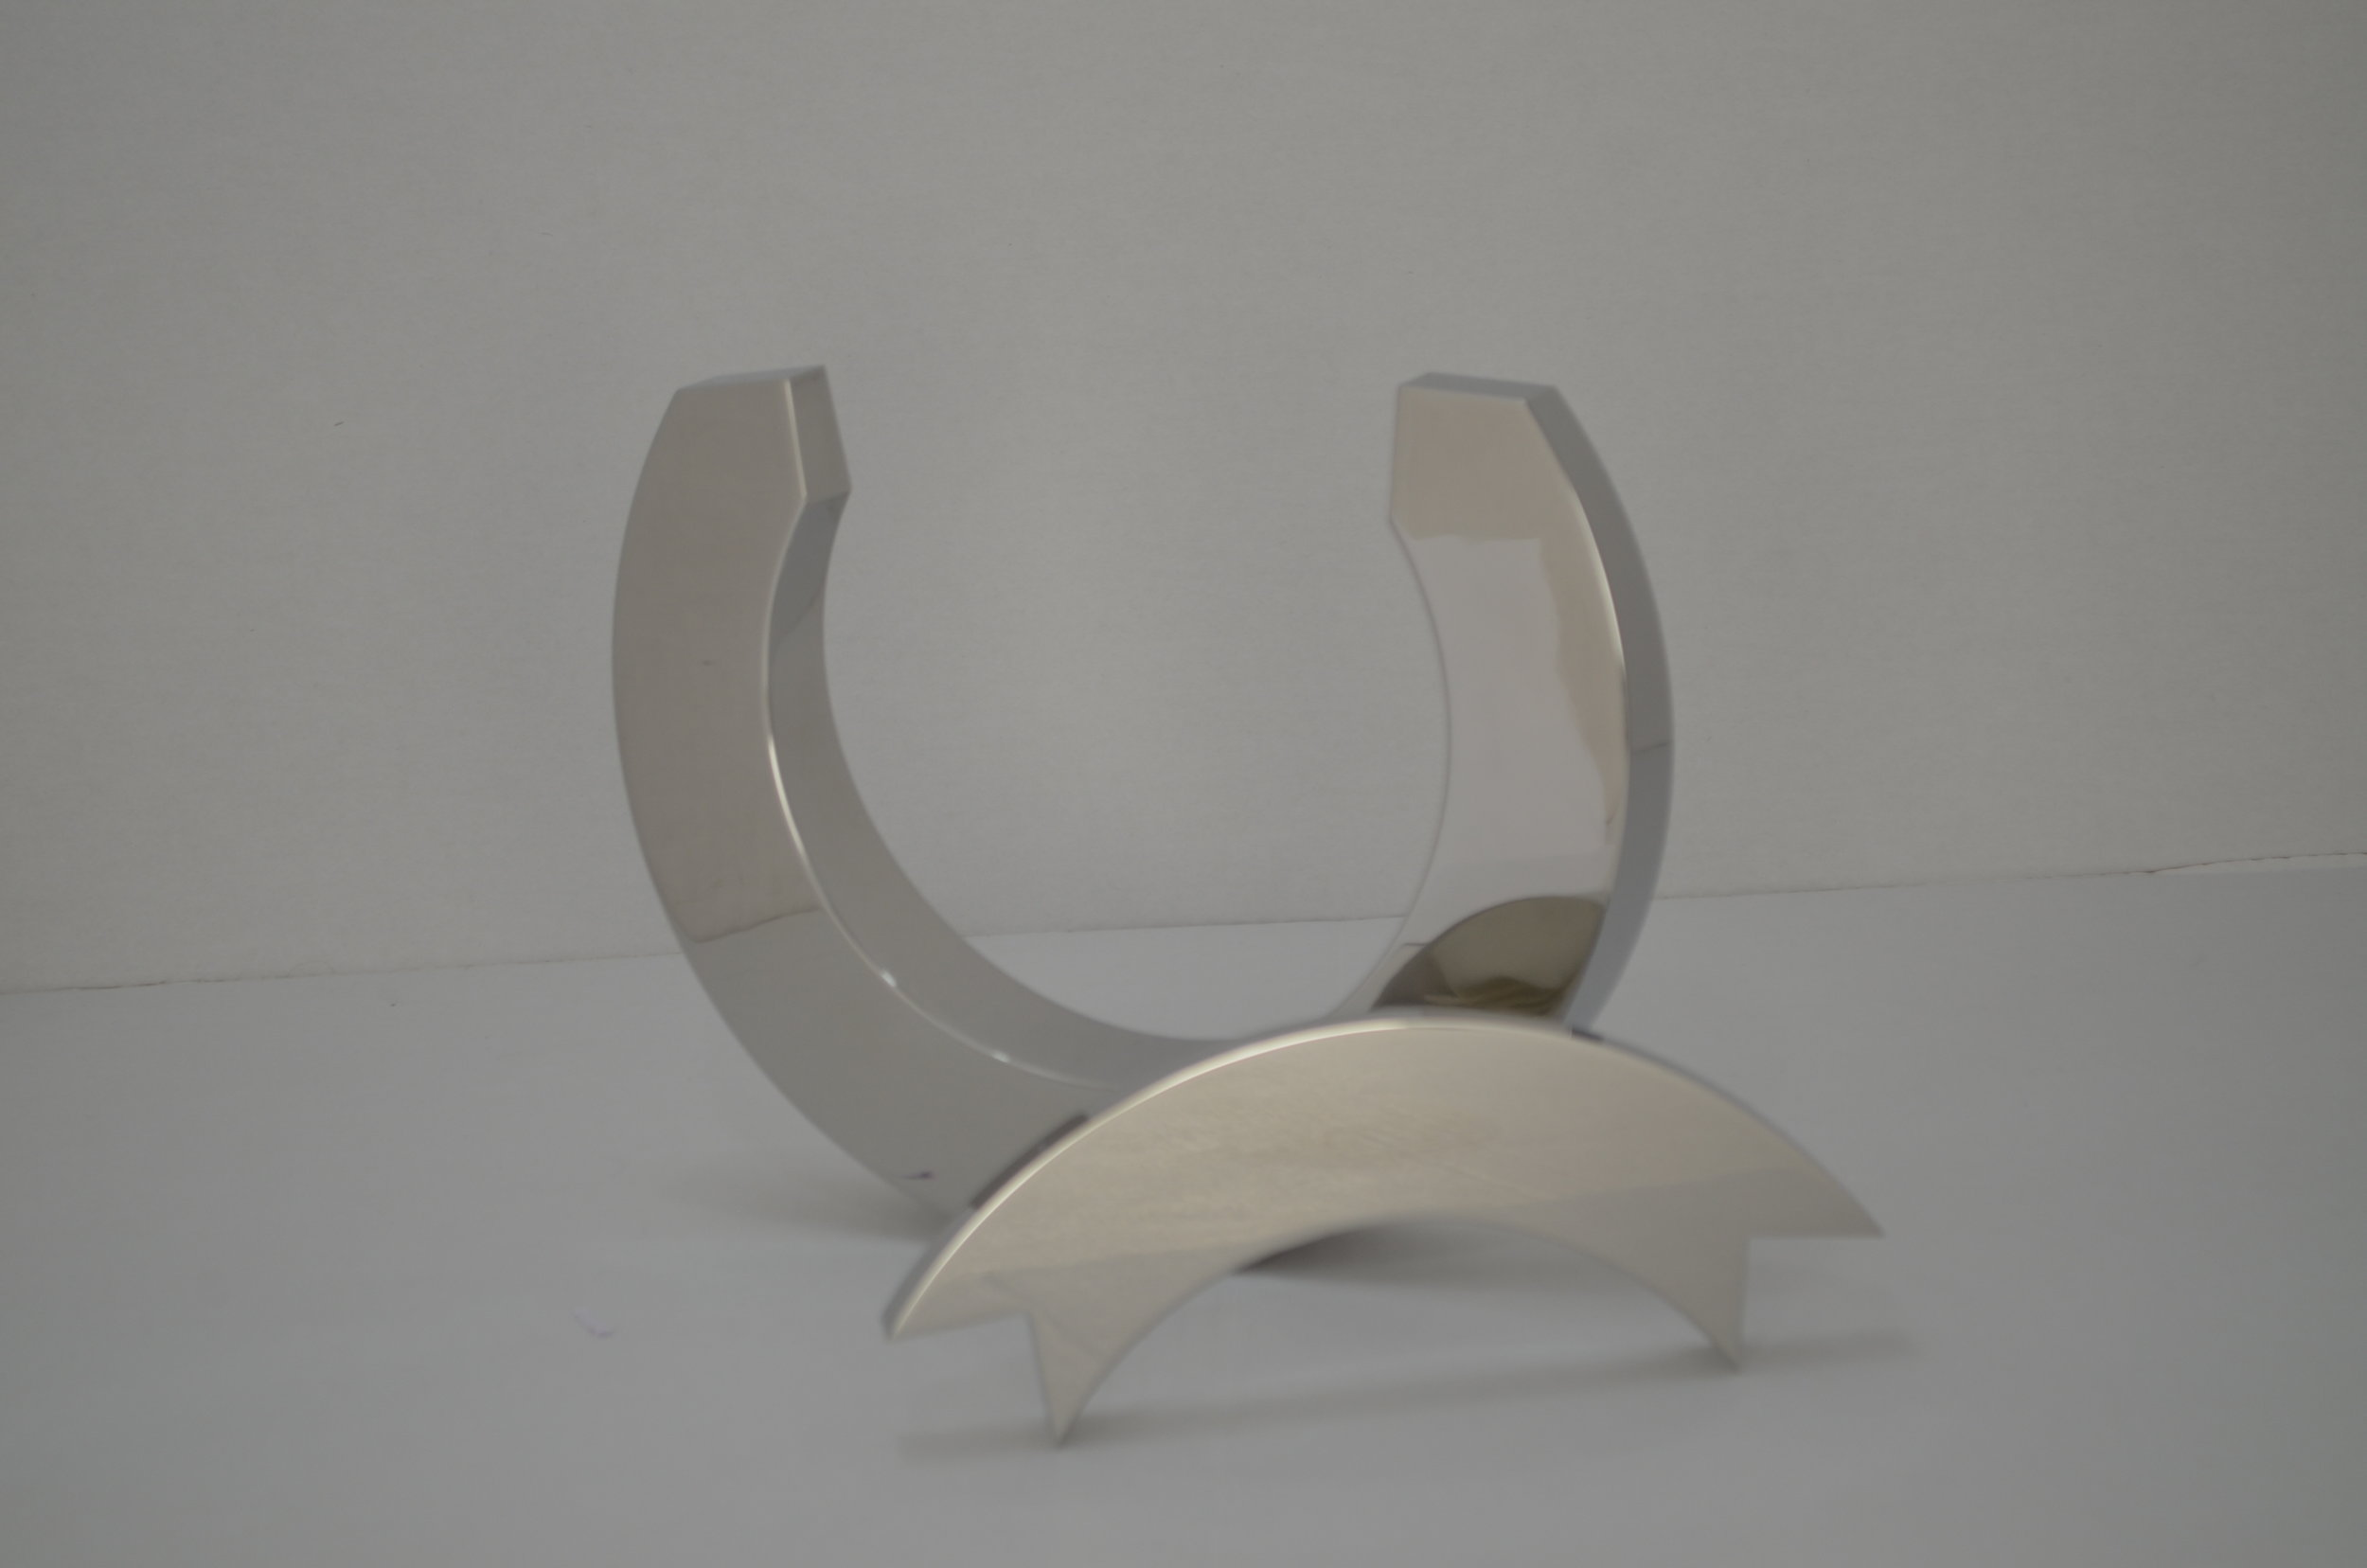 Kinetic steel sculpture in two pieces